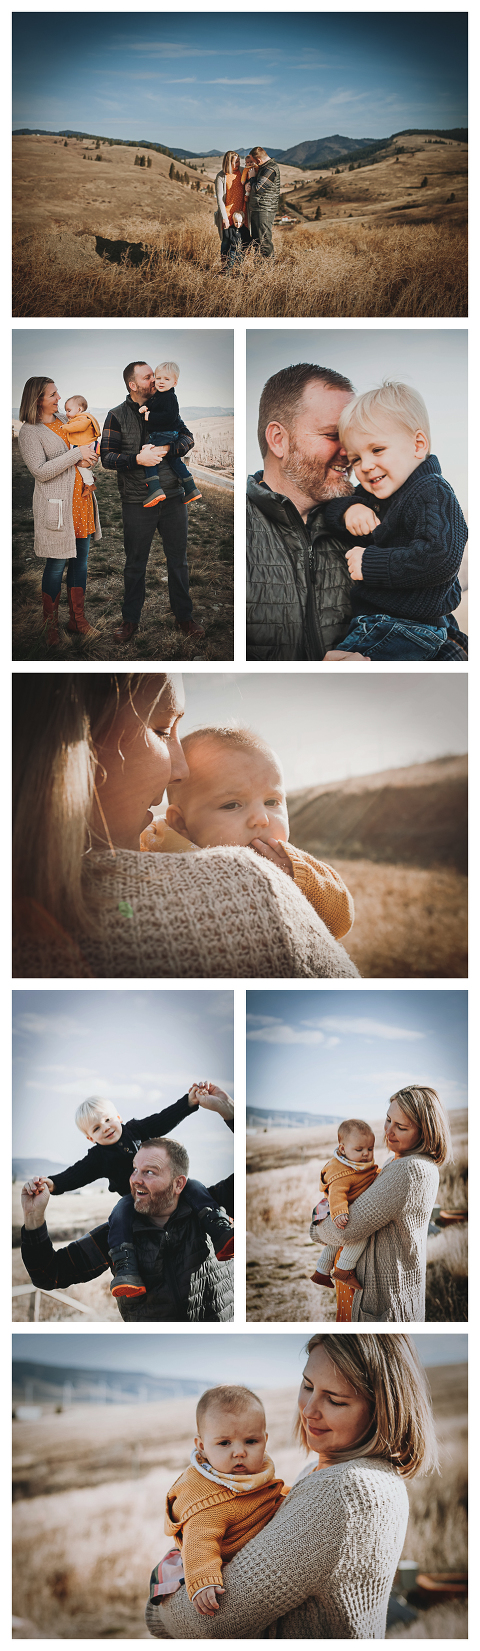 Coyne Family, Haberman Family, Lifestyle session captured by Hailey Haberman, Ellensburg, WA